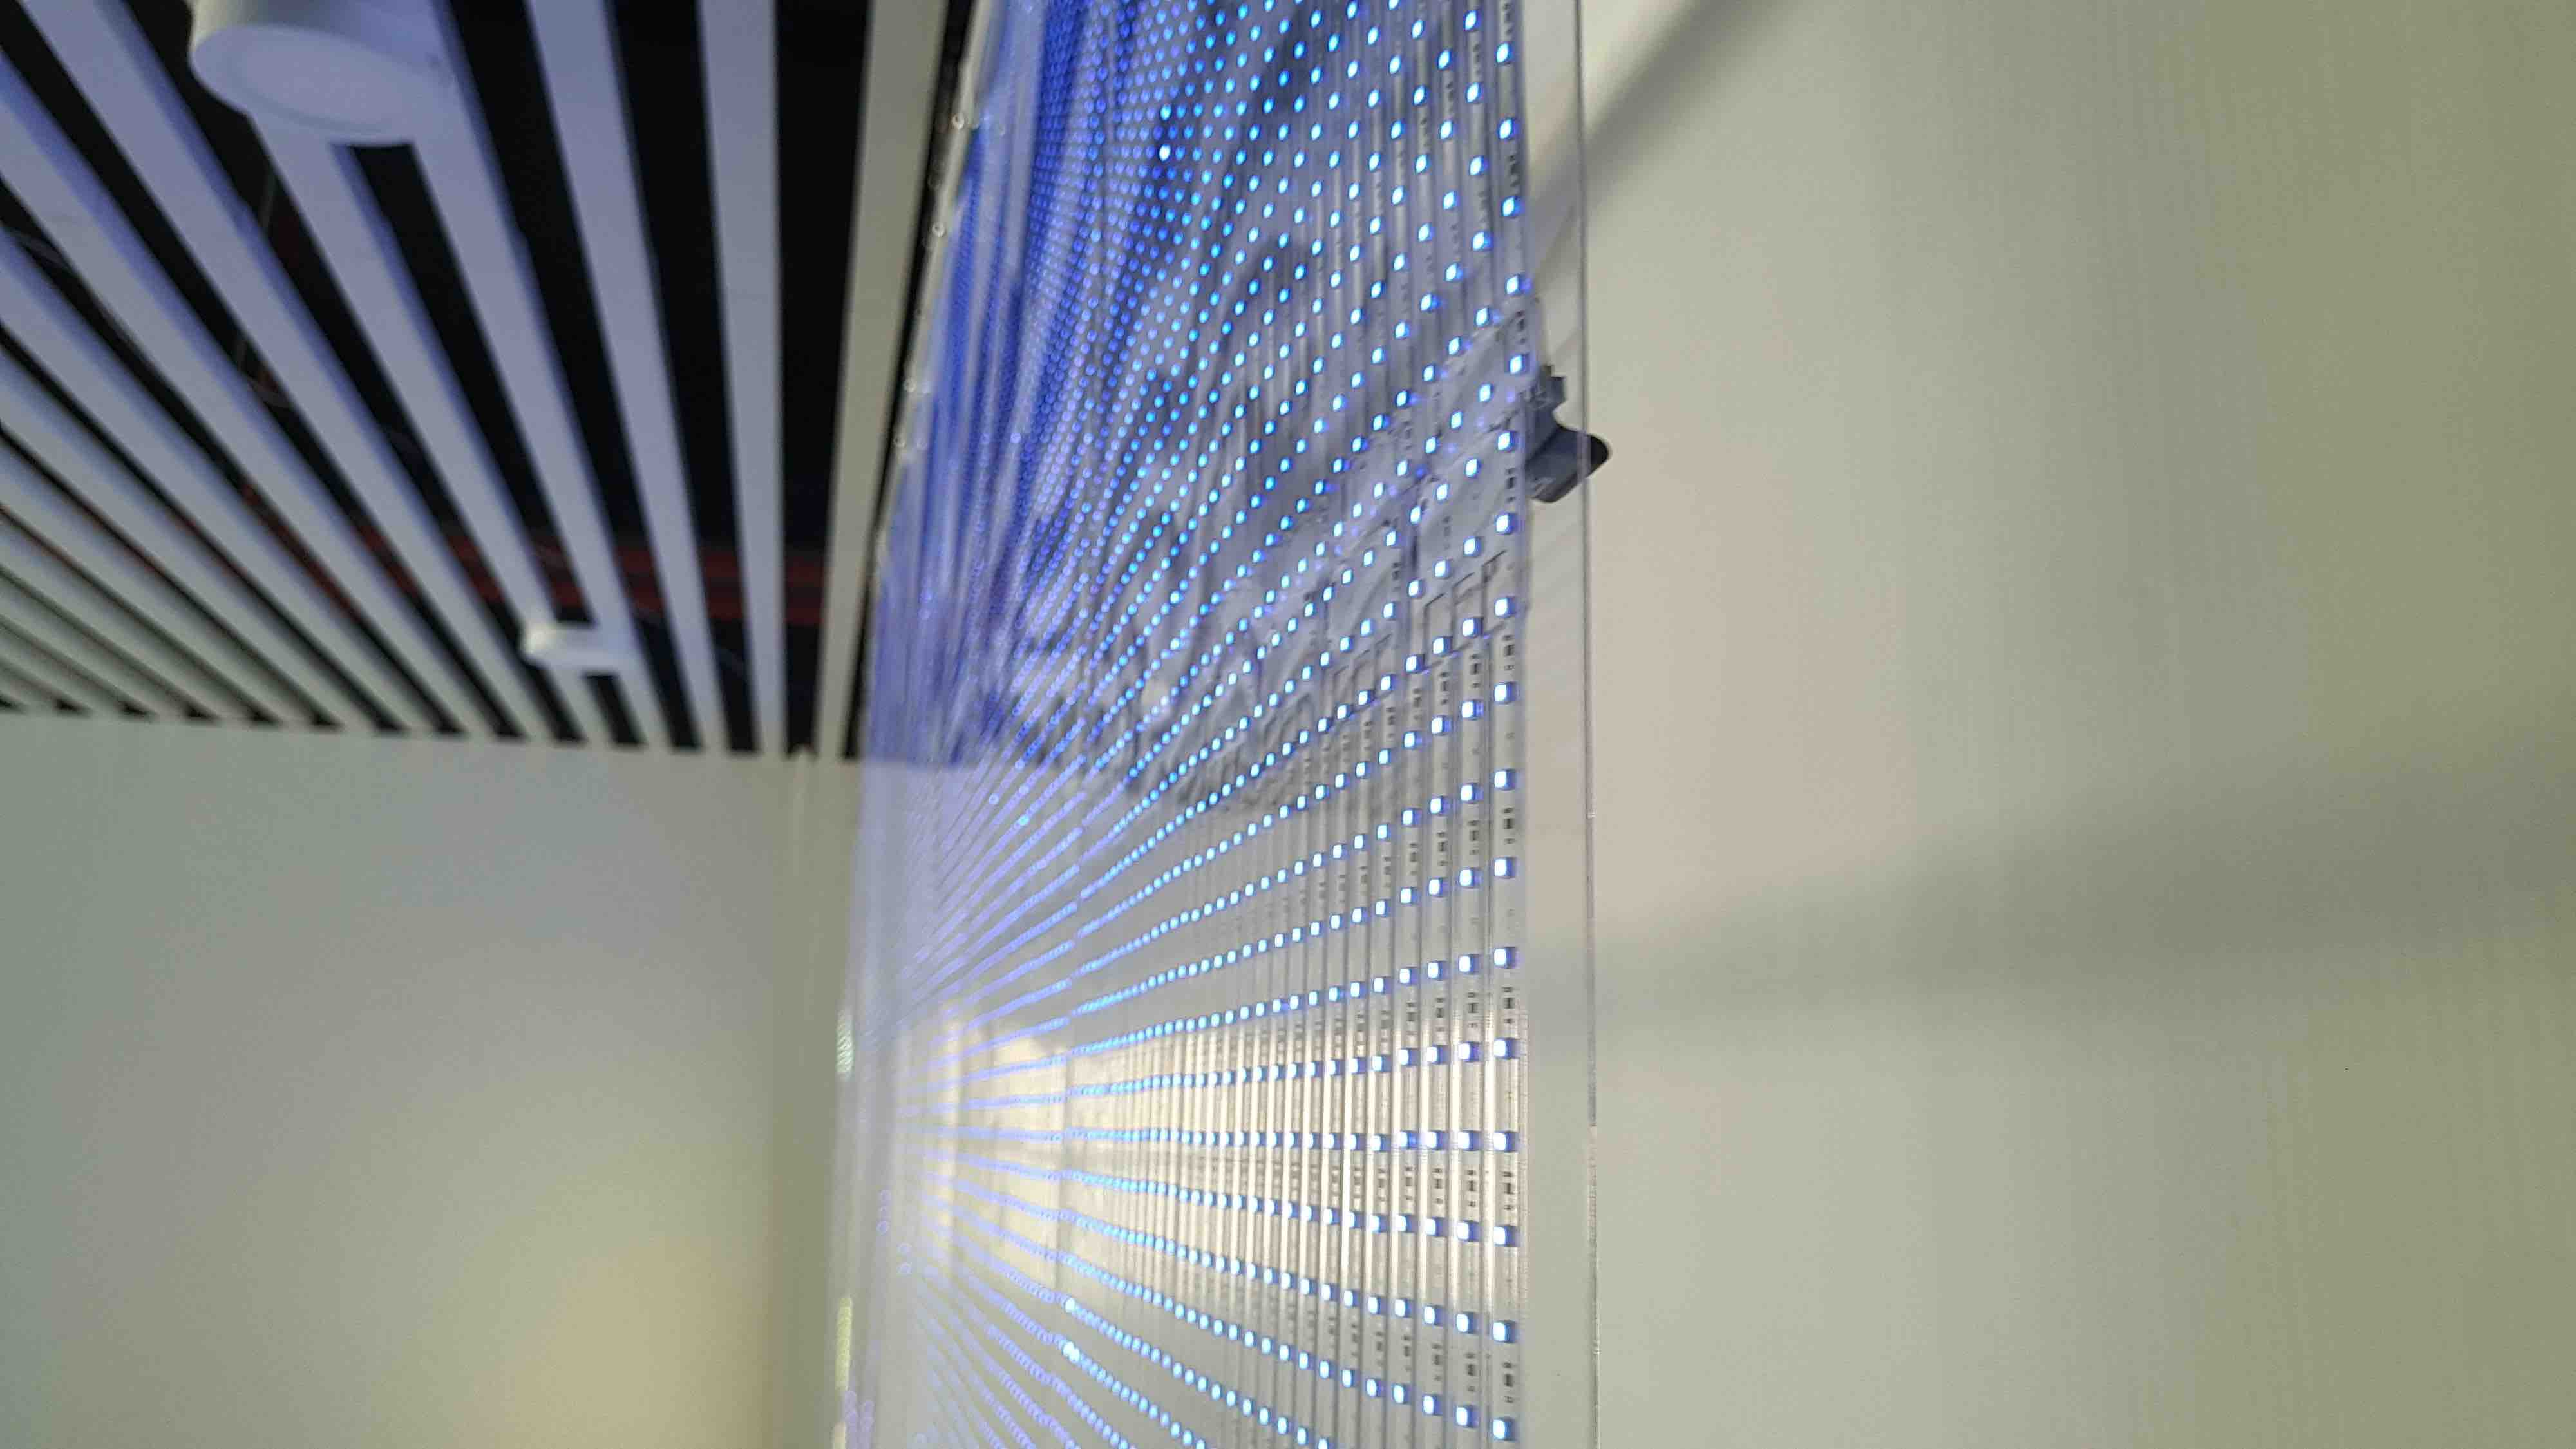 Adhesif transparent LED facade window building wall indoor to stick on windows glass - Innovative Adhesives - LED Display - Street Communication